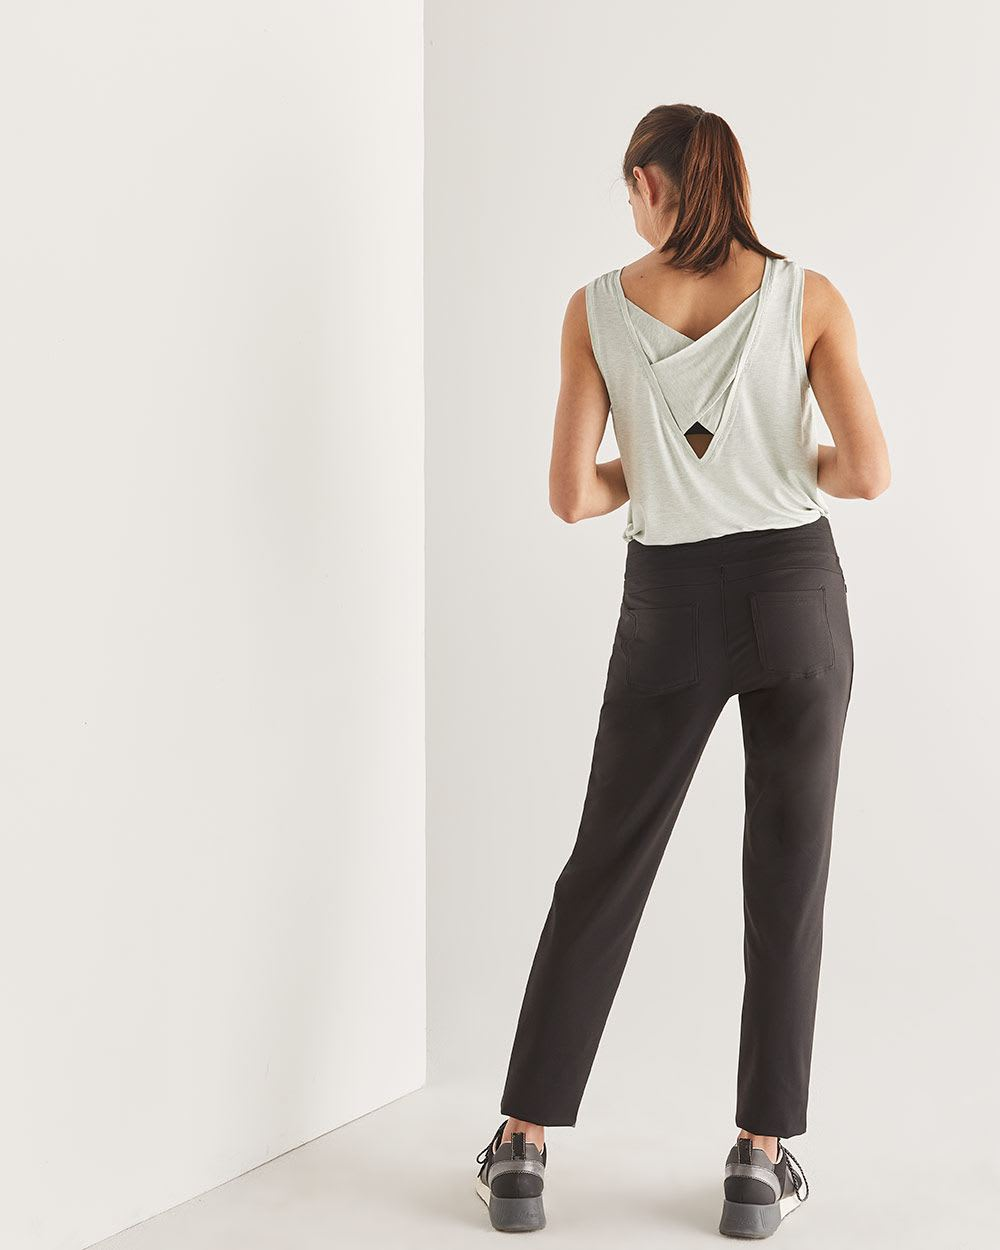 Hyba Urban Black Slim Pants - Petite